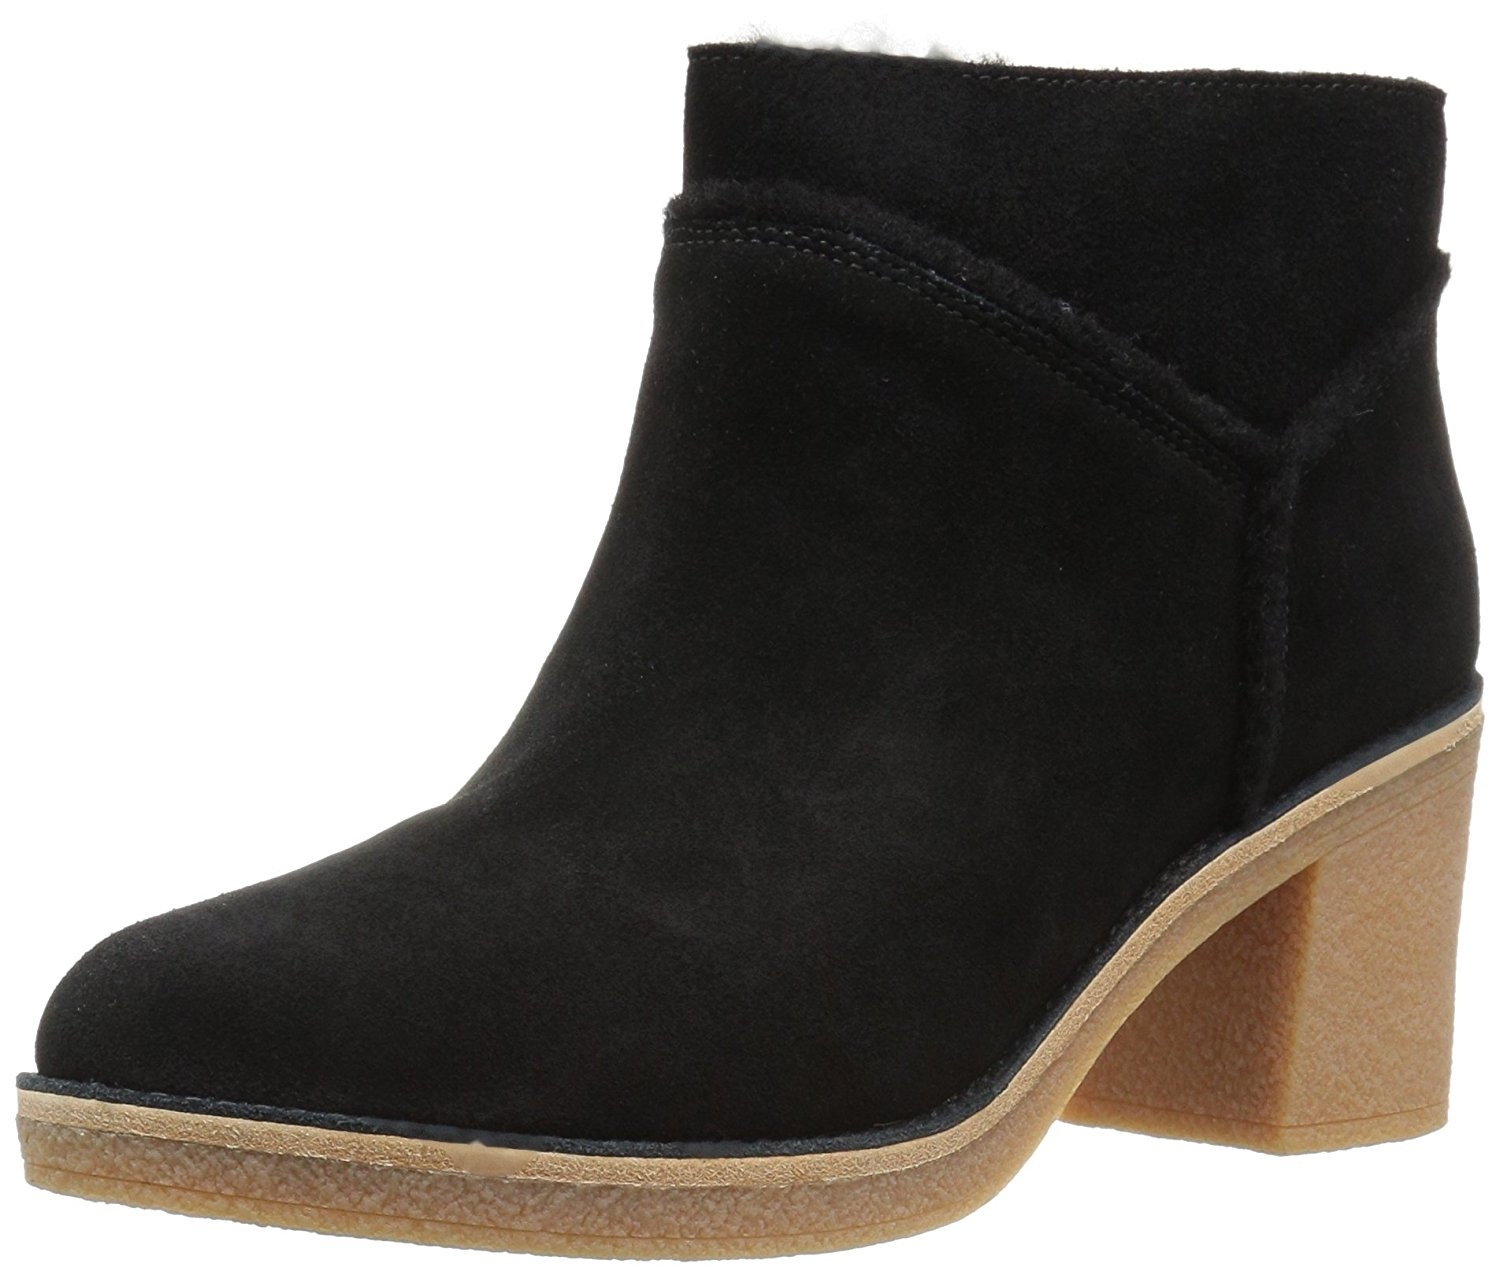 bc19d4fdfd5 Details about Ugg Australia Womens Kasen Closed Toe Ankle Cold Weather Boots